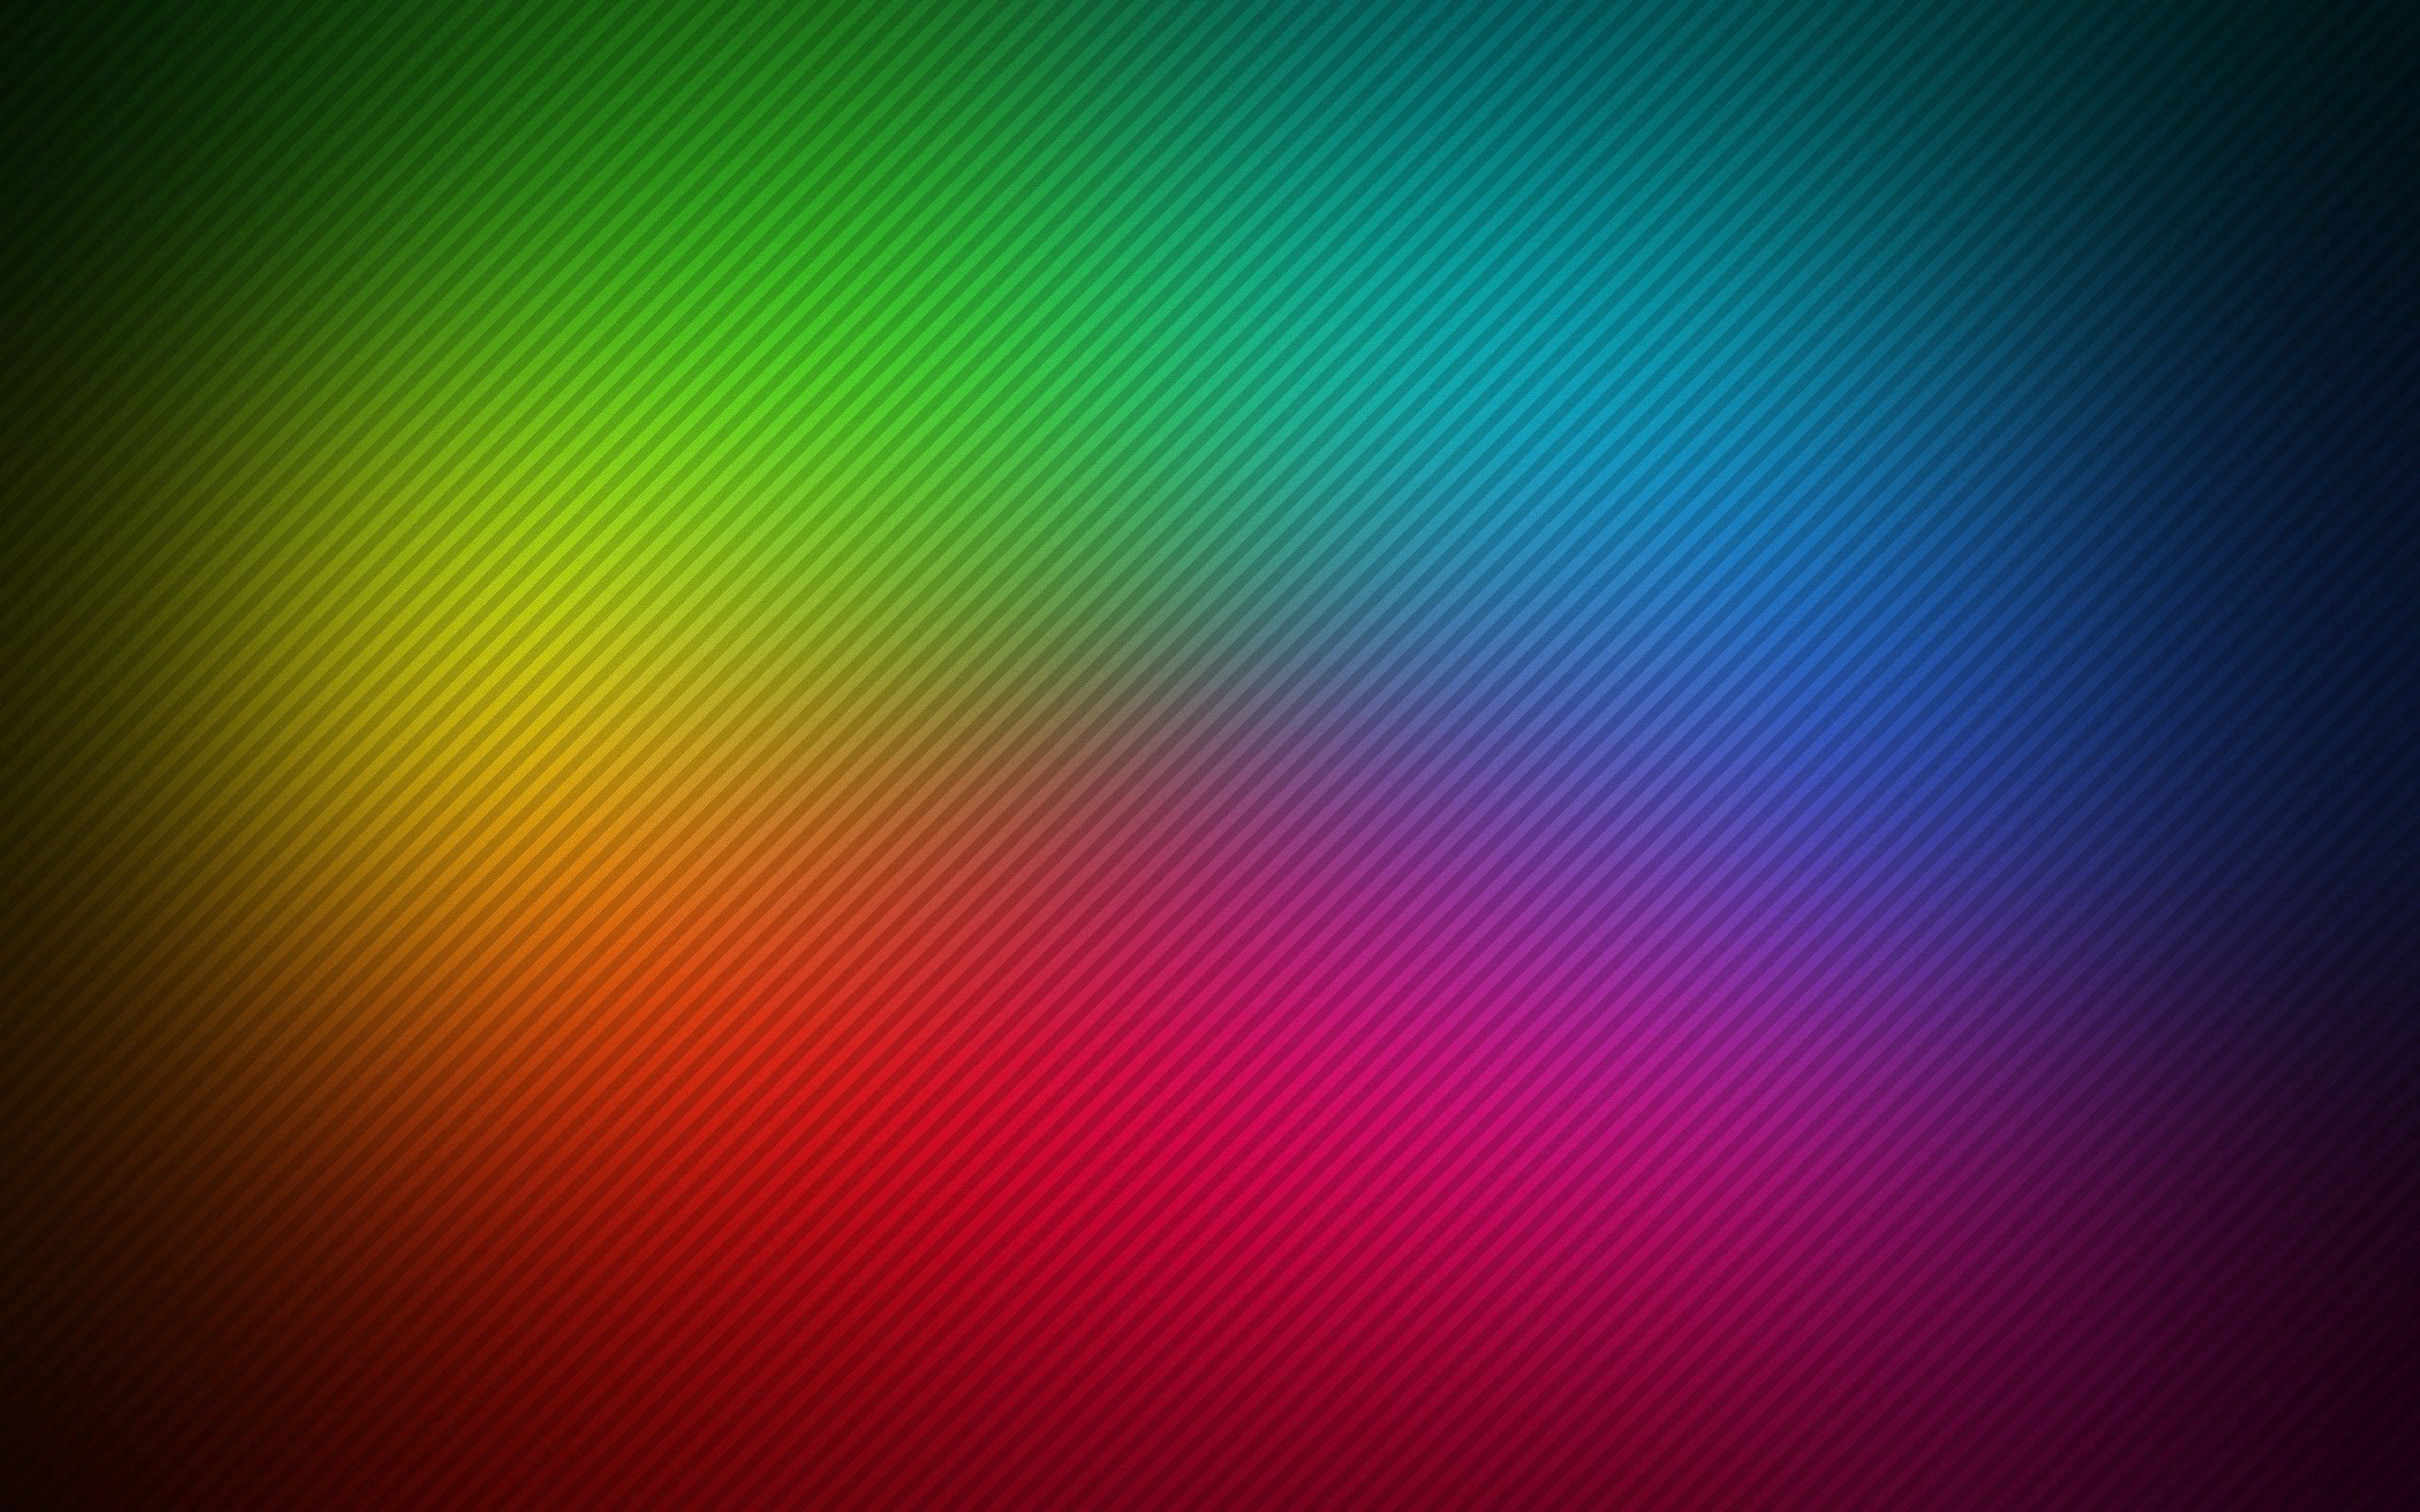 bright lines resolution image wallpaper